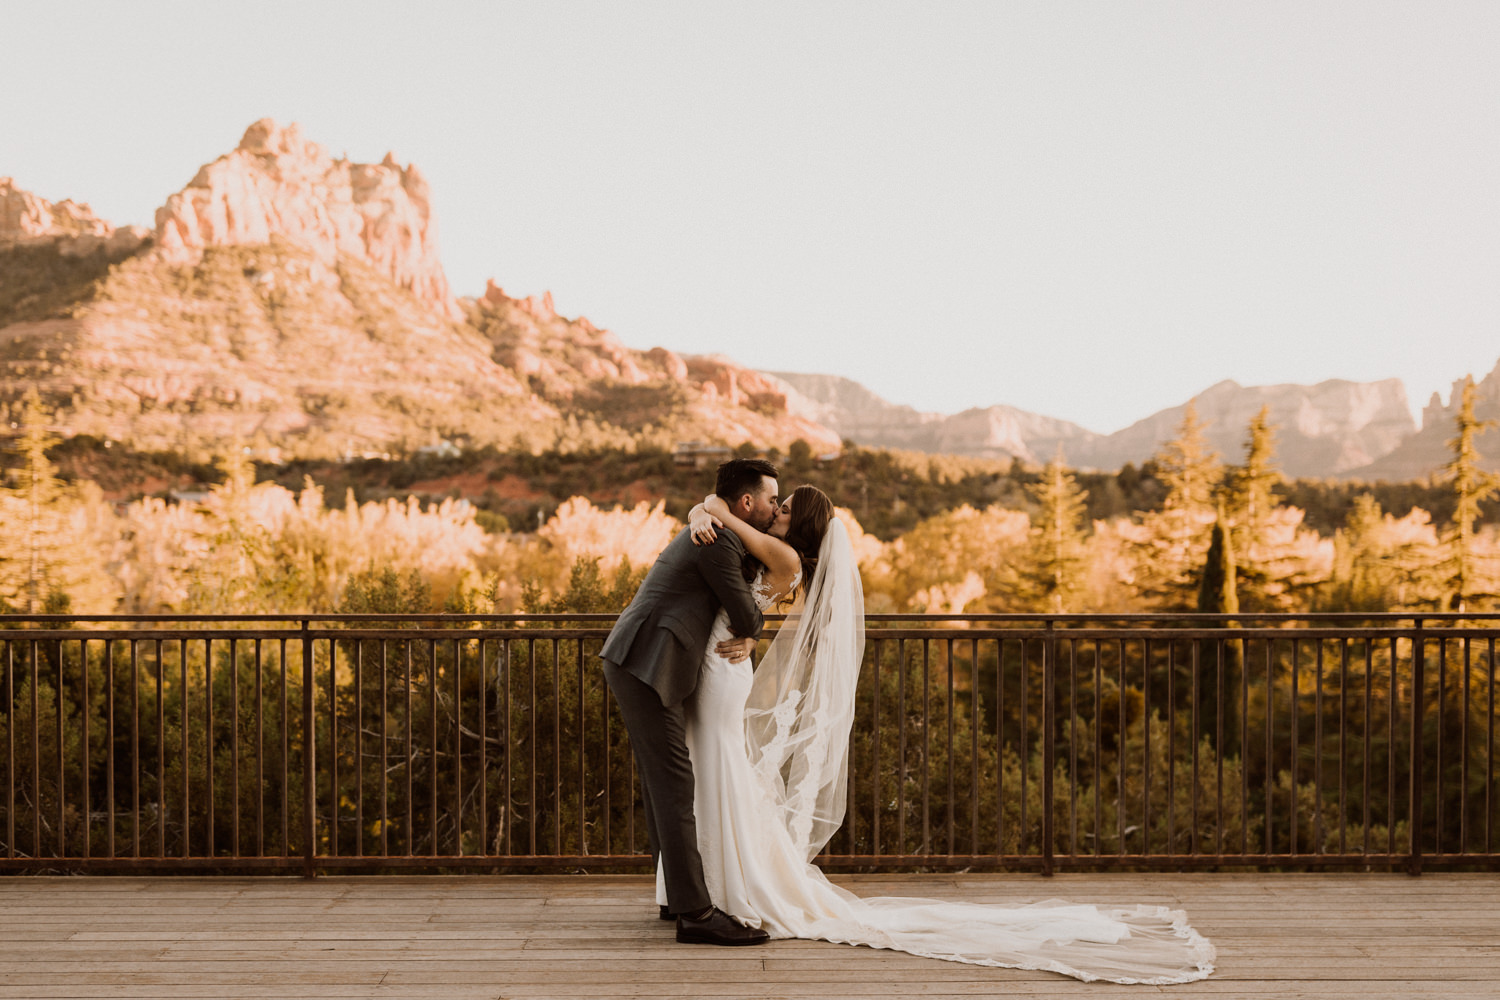 32_intimate-sedona-arizona-wedding-47.jpg